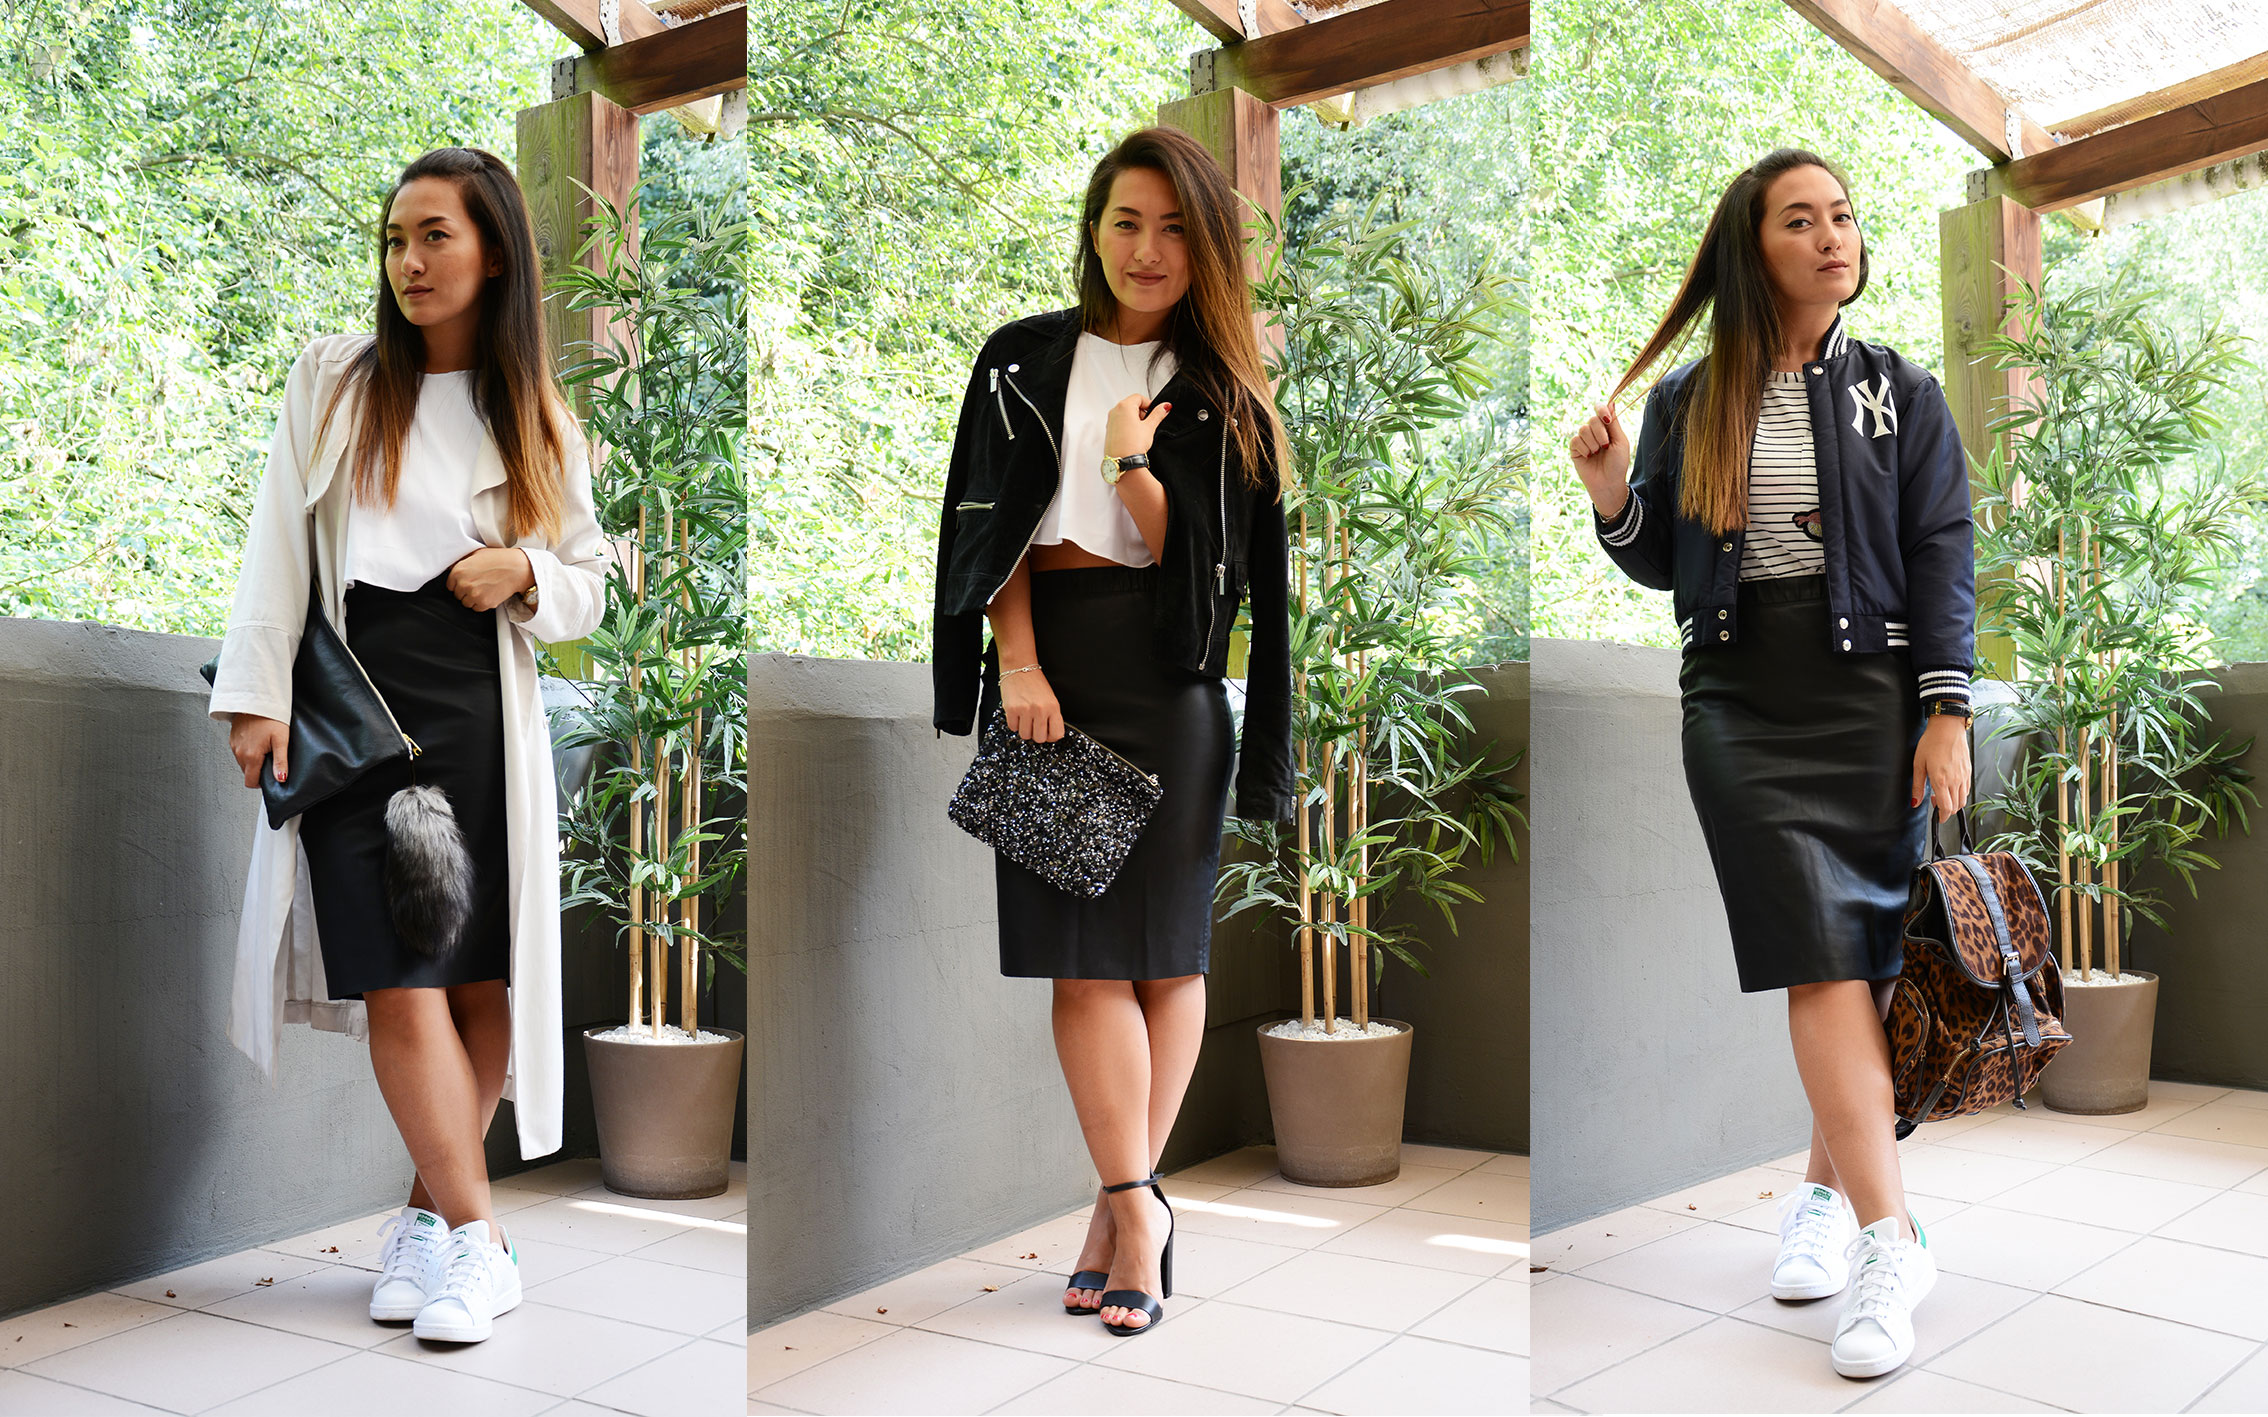 3-ways-leather-skirt-façons-jupe-cuir